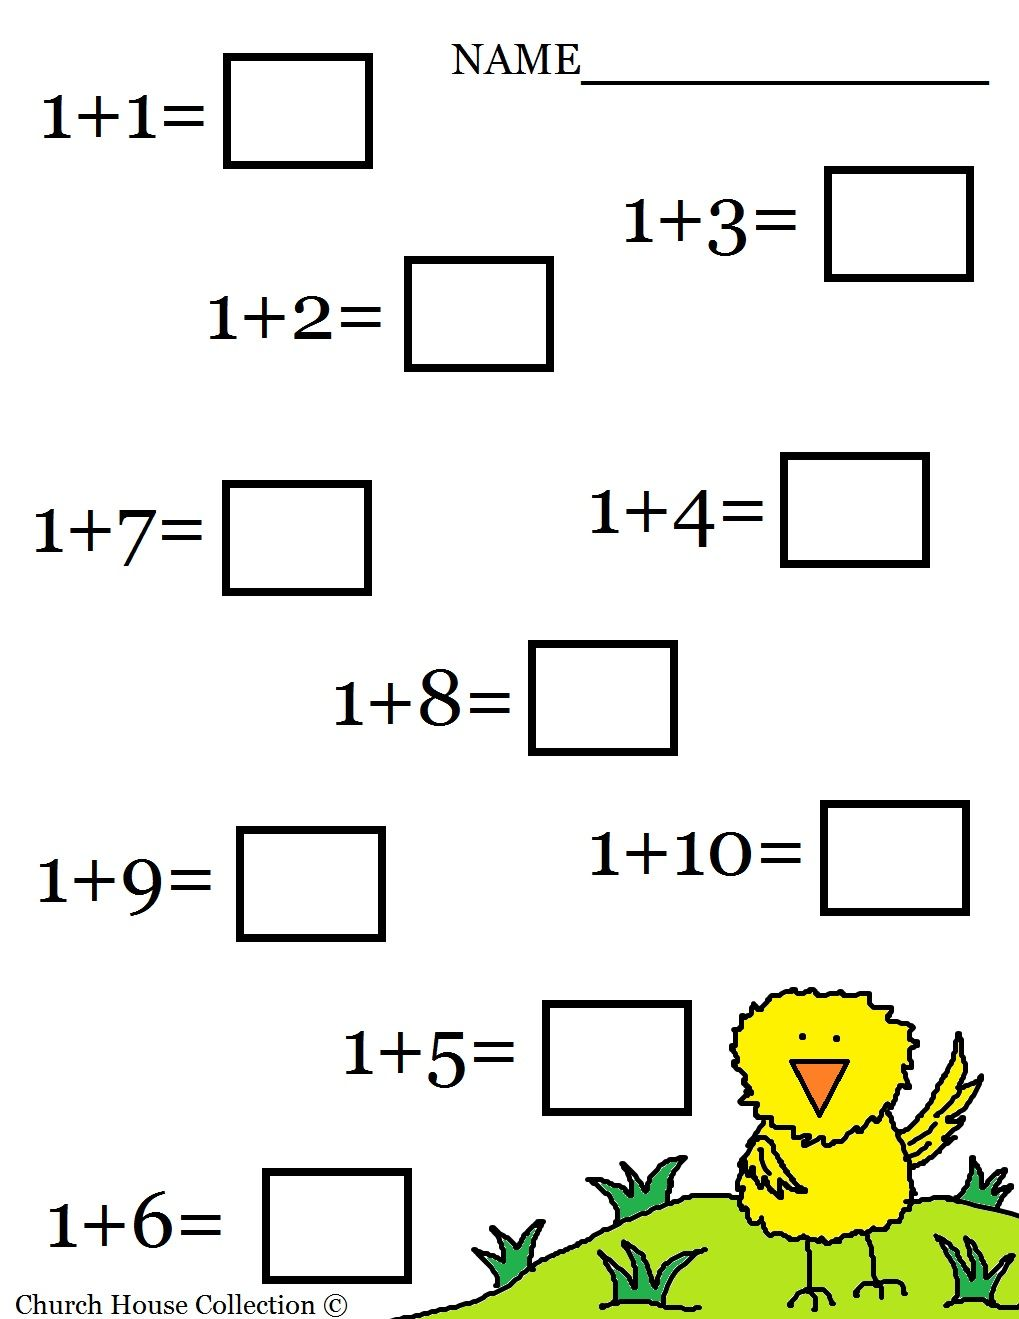 Aldiablosus  Unique  Images About Worksheets  Math On Pinterest  Math Sheets  With Goodlooking  Images About Worksheets  Math On Pinterest  Math Sheets Math Worksheets For Kindergarten And Simple Addition With Easy On The Eye Free Kindergarten Reading Worksheets Also Division Worksheets For Th Grade In Addition Fitness Worksheets And Graphing System Of Equations Worksheet As Well As Distance Displacement Worksheet Additionally Biology Worksheets Pdf From Pinterestcom With Aldiablosus  Goodlooking  Images About Worksheets  Math On Pinterest  Math Sheets  With Easy On The Eye  Images About Worksheets  Math On Pinterest  Math Sheets Math Worksheets For Kindergarten And Simple Addition And Unique Free Kindergarten Reading Worksheets Also Division Worksheets For Th Grade In Addition Fitness Worksheets From Pinterestcom